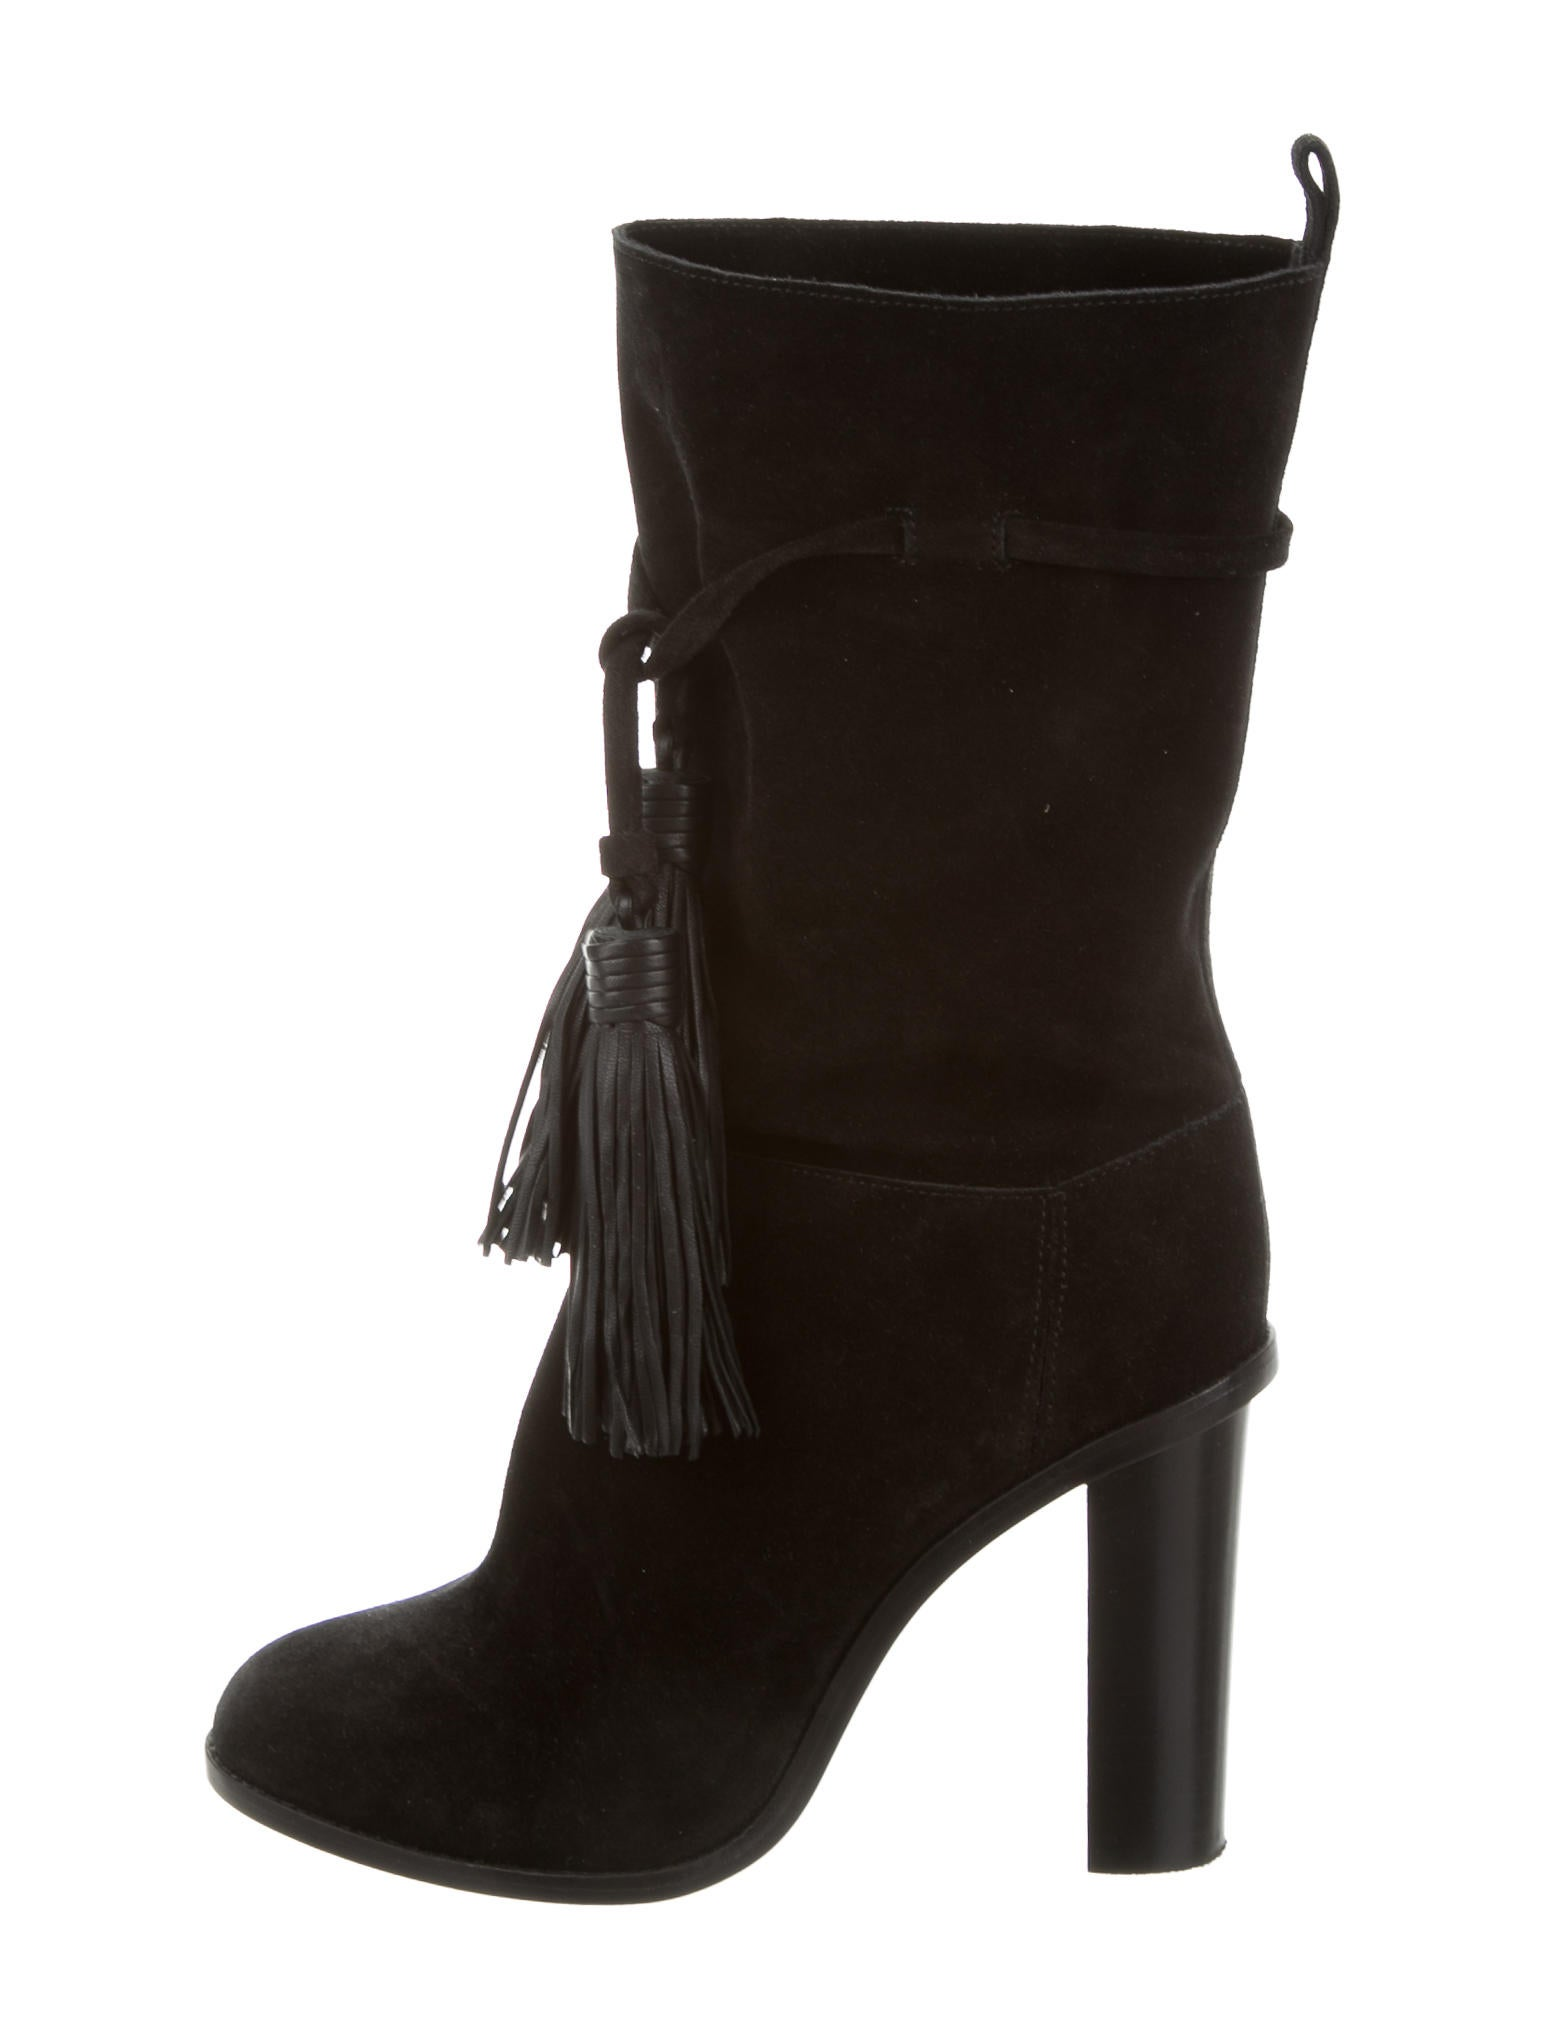 lanvin suede ankle boots shoes lan62188 the realreal